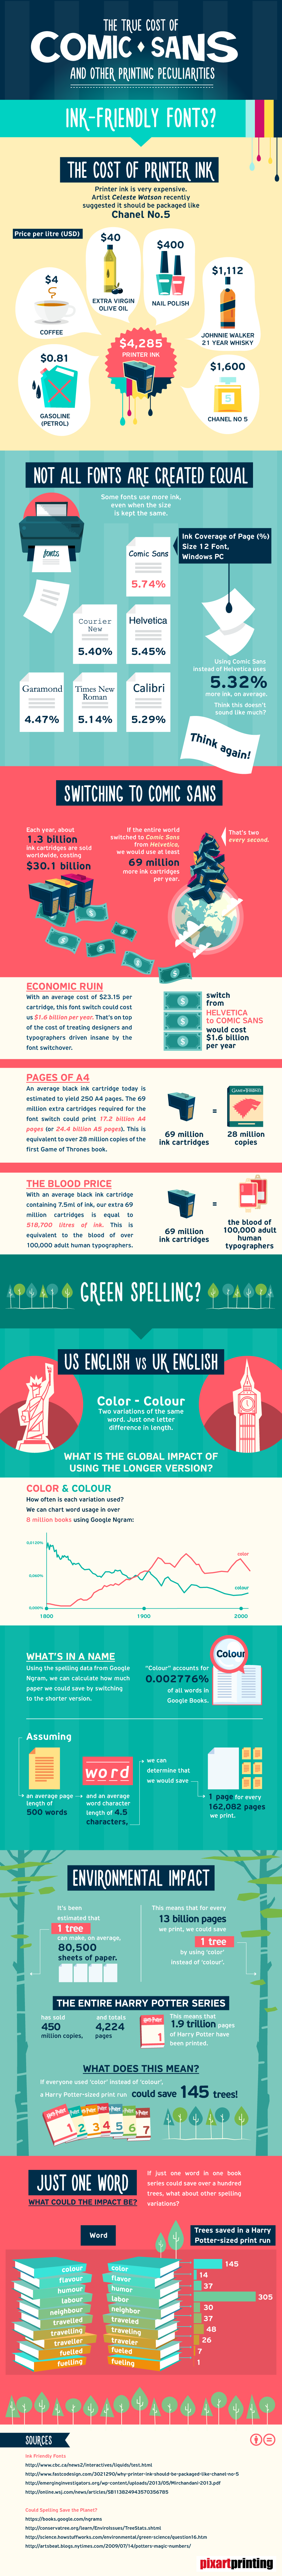 Cost of Printing and Typefaces